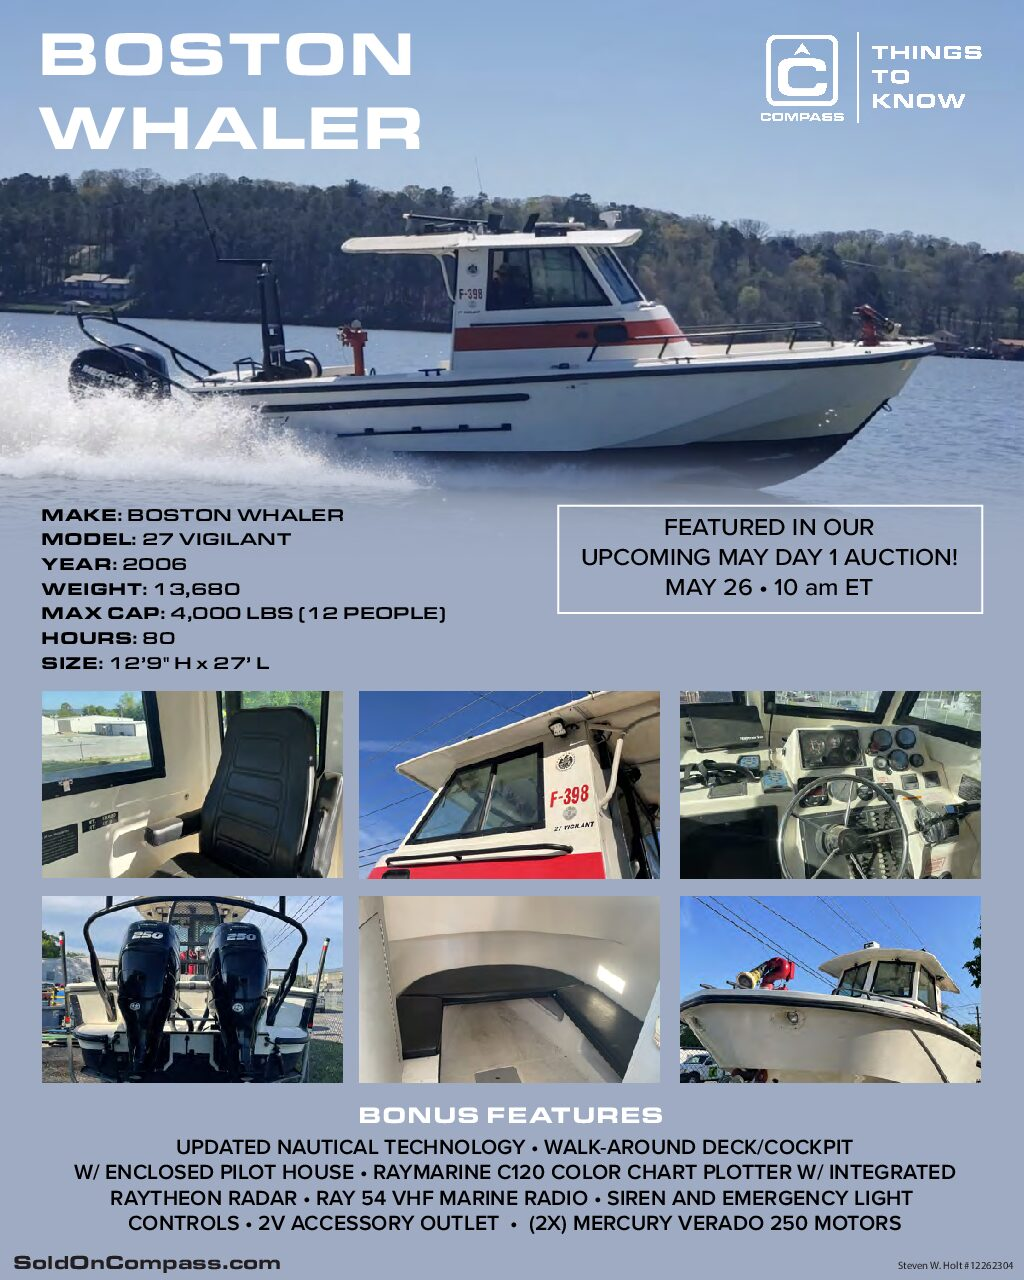 Boston Whaler Specs Infographic May Day 1 Compass Auctions and Real Estate